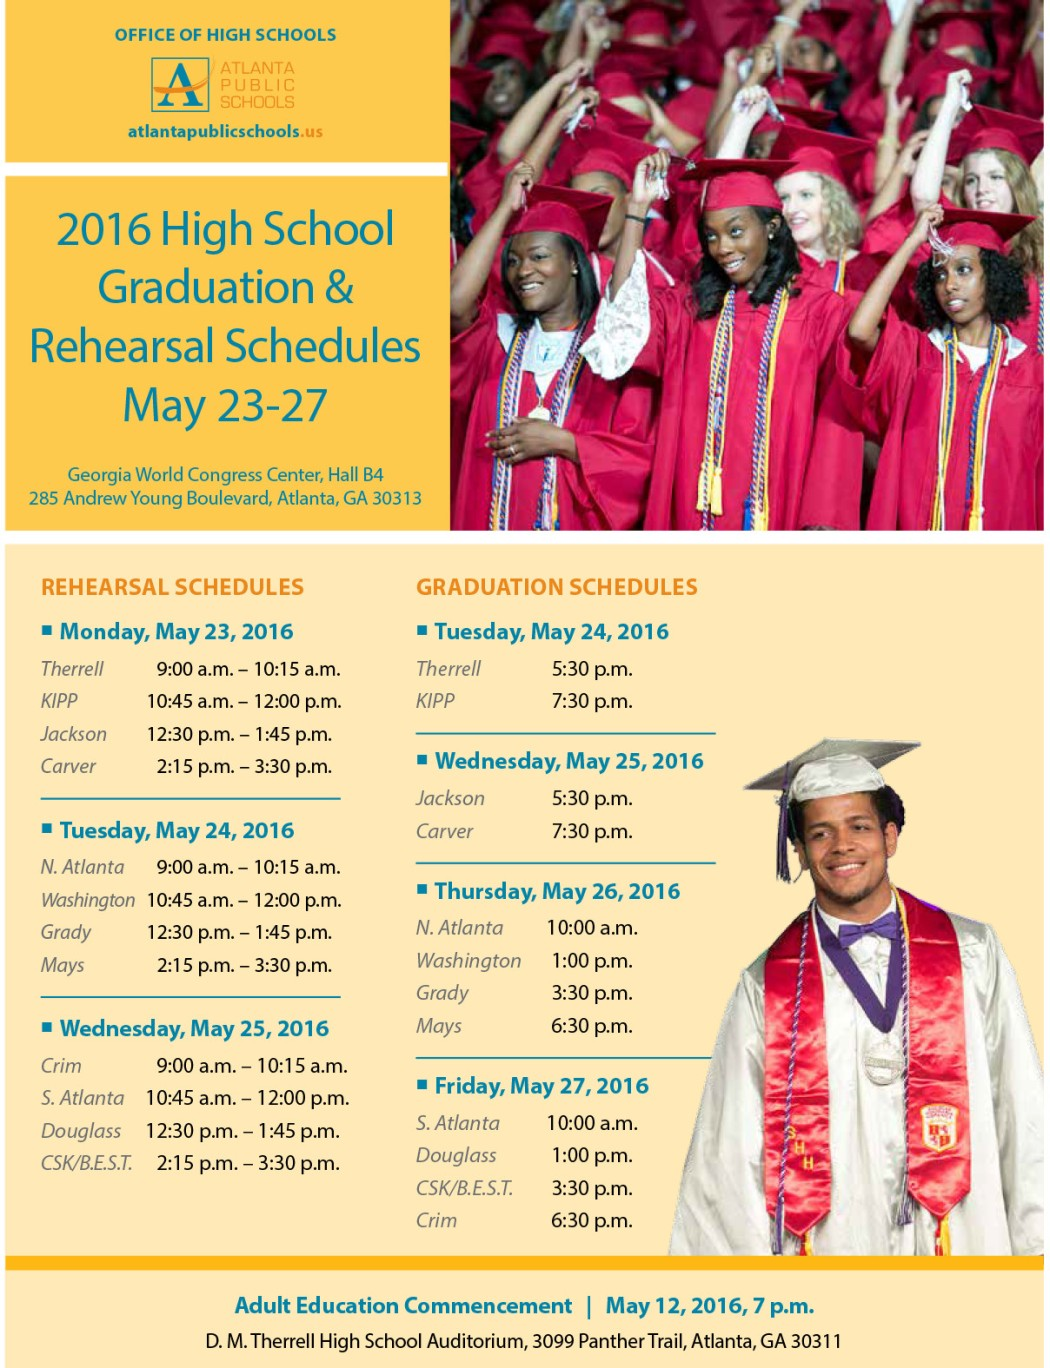 3r3-2016 APS rehearsal-graduation schedules